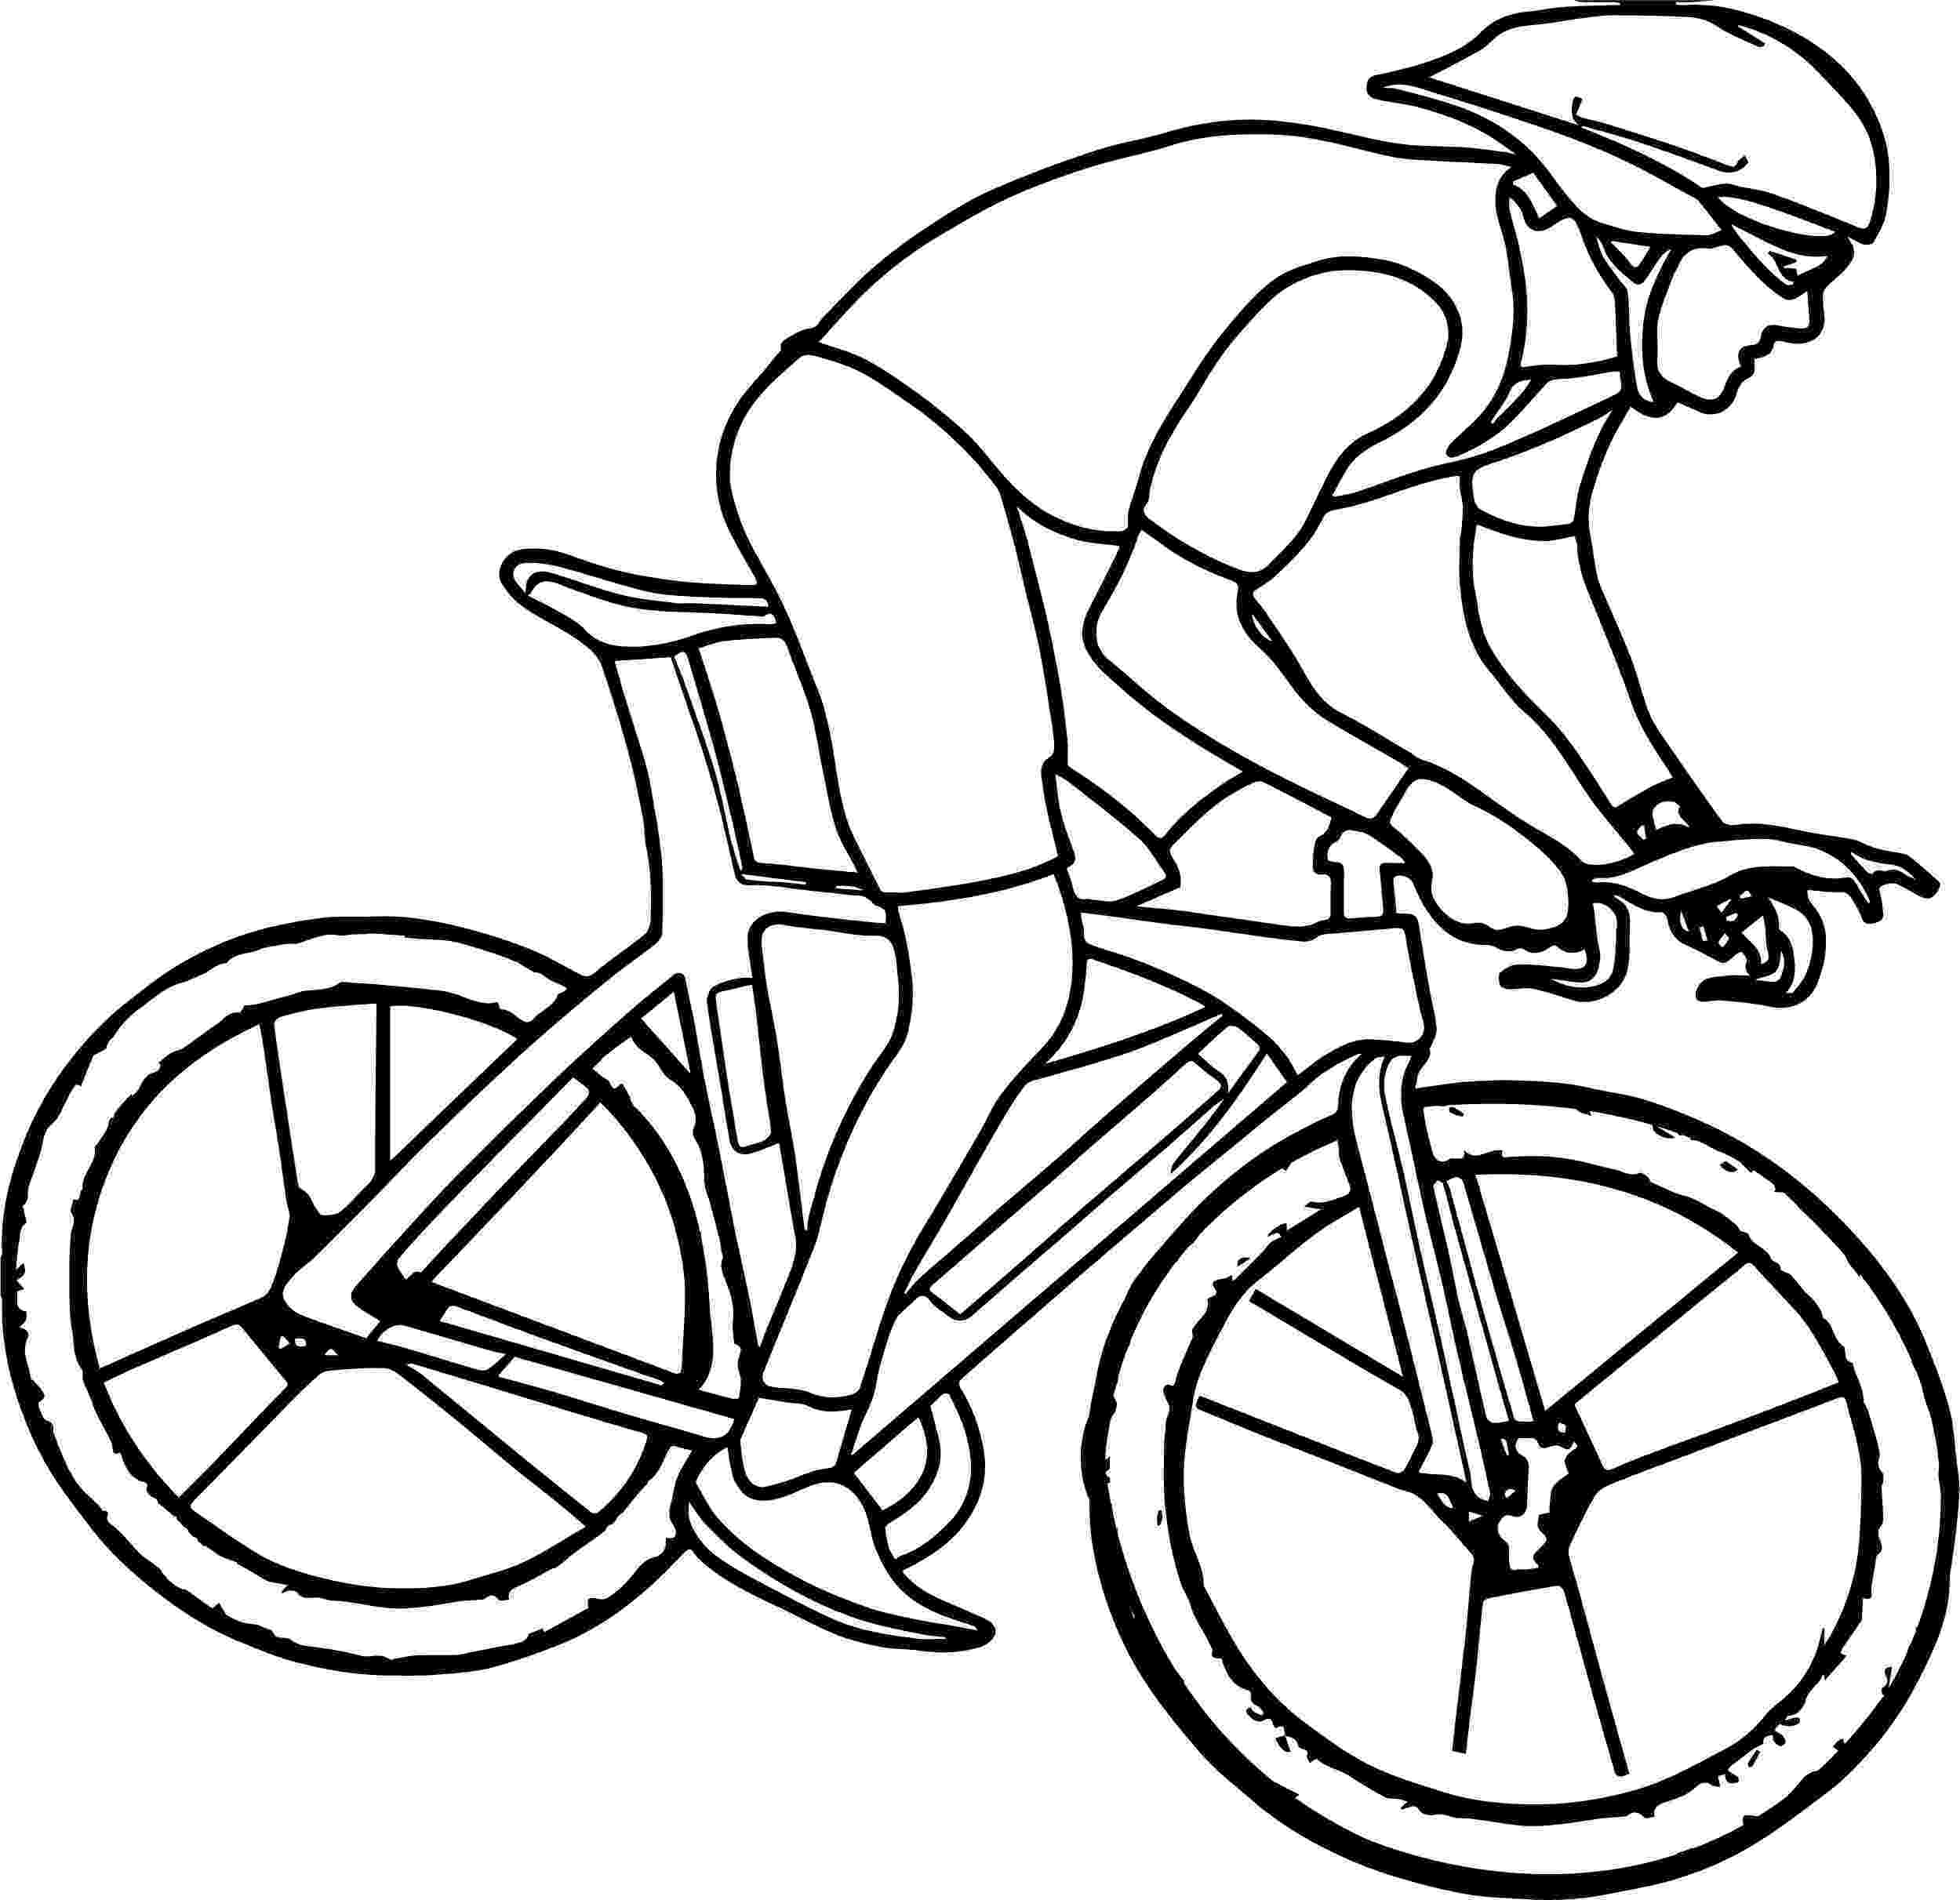 bike coloring pages franklin with bicycle coloring pages hellokidscom coloring pages bike